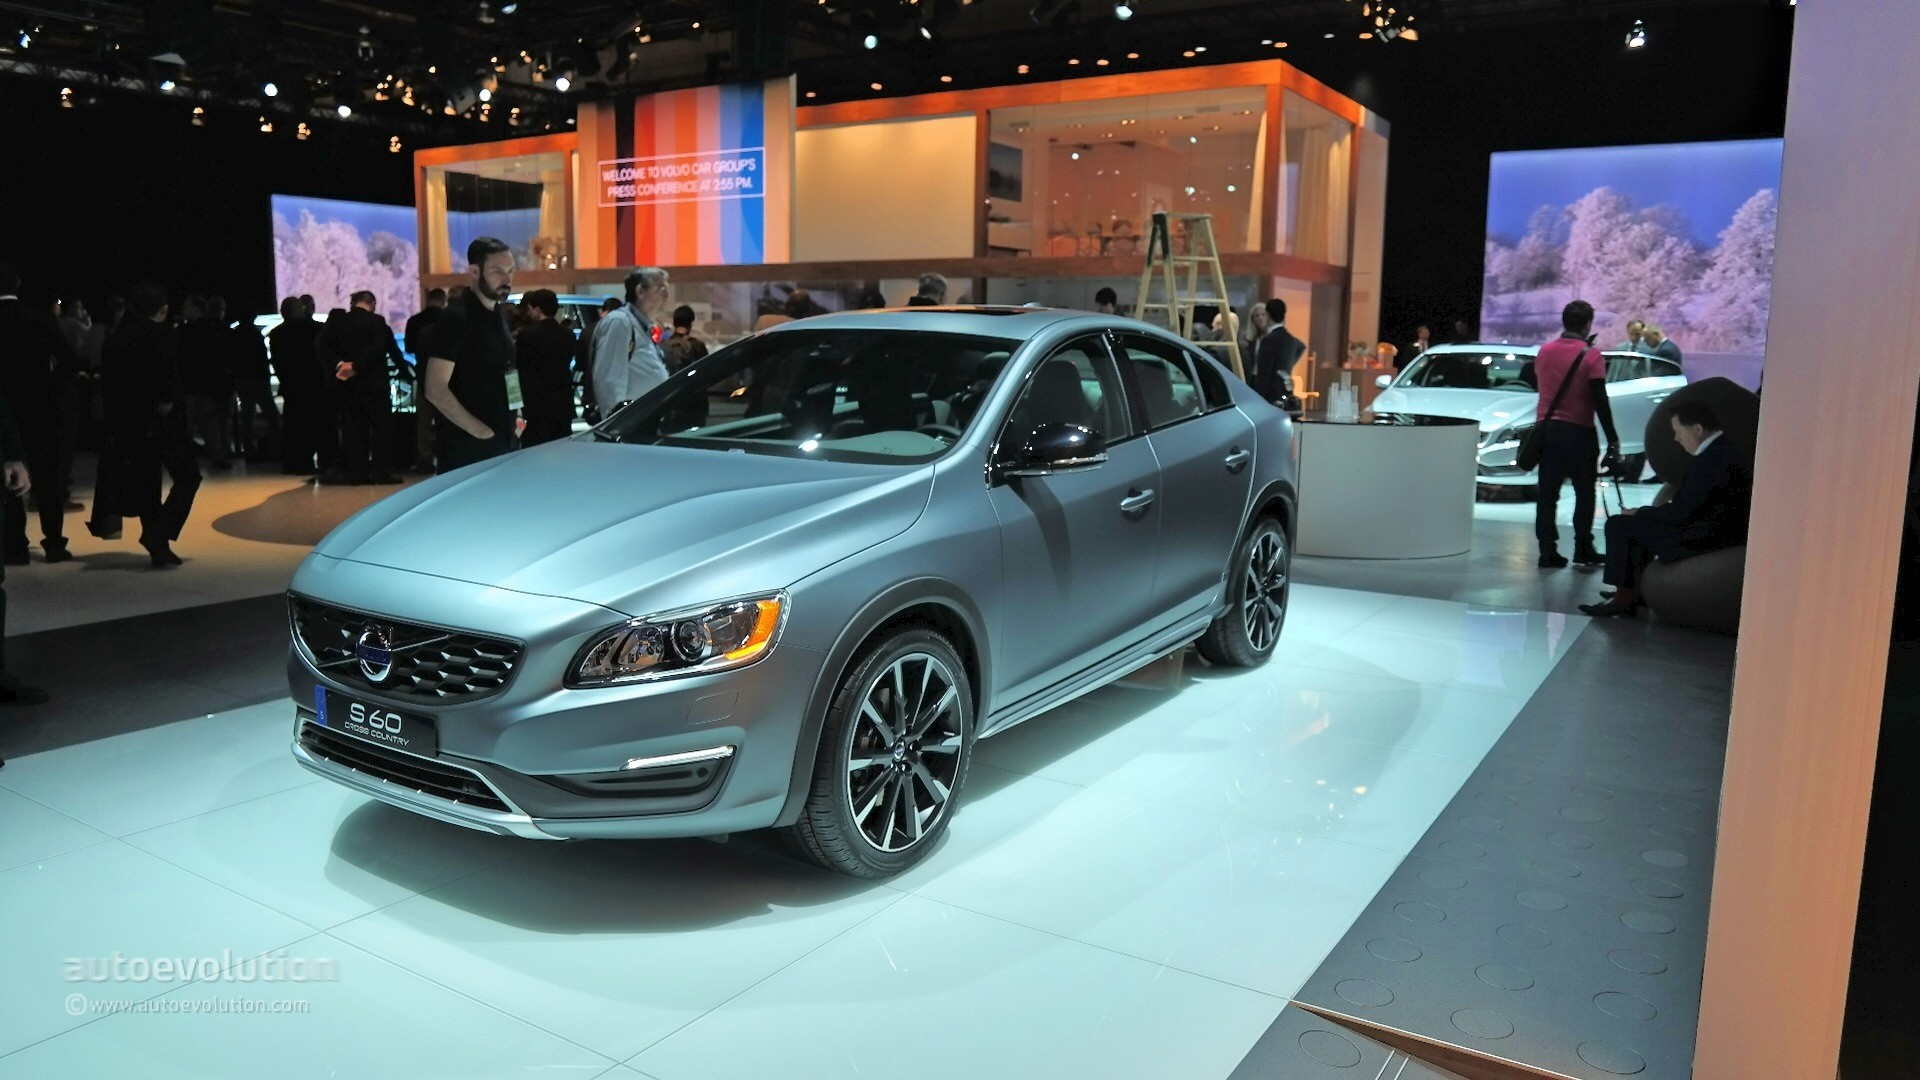 Drive Away Auto Sales >> 2016 Volvo S60 Cross Country Bows at Detroit Wearing Matte Grey Finish [Live Photos] - autoevolution